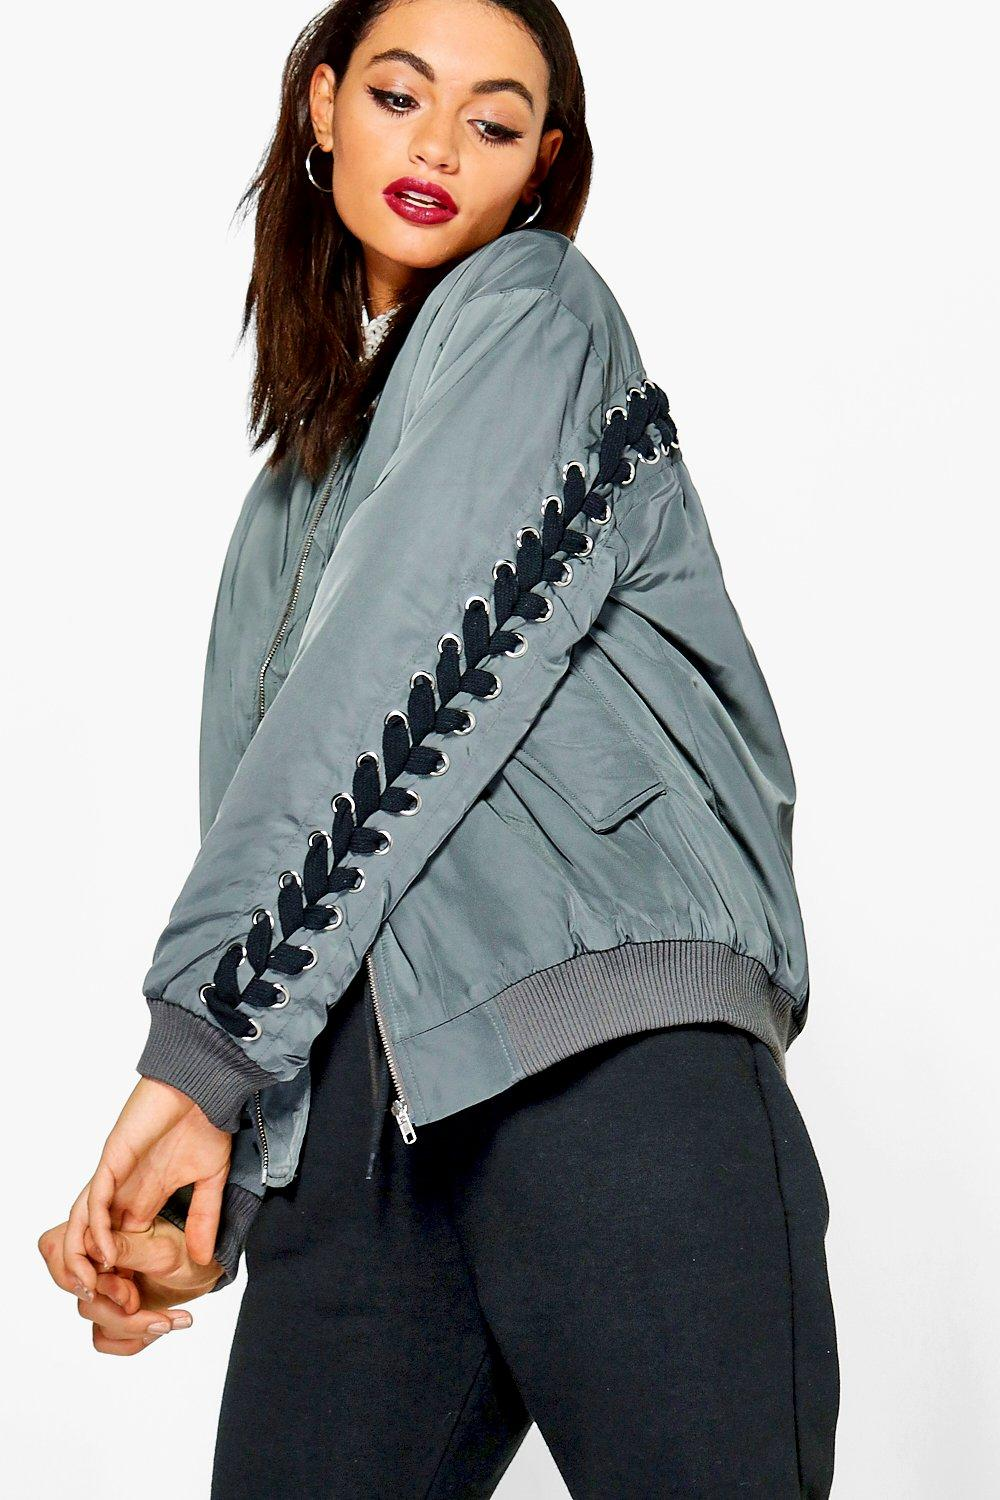 Lois Eyelet Lace Up Back Bomber Jacket